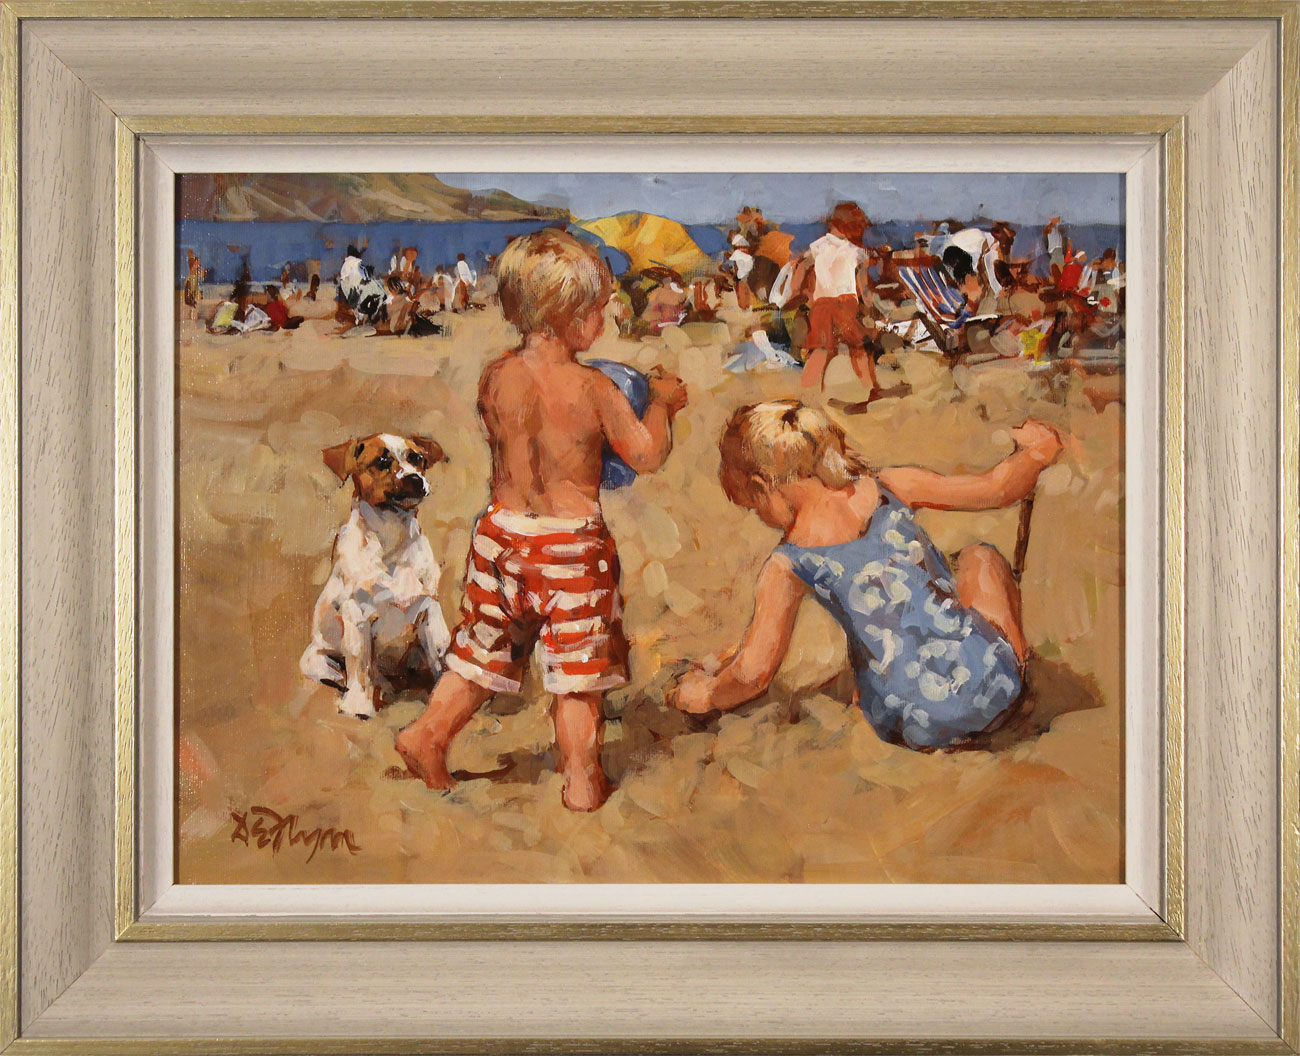 Dianne Flynn, Original acrylic painting on board, The Sands at Lyme. Click to enlarge